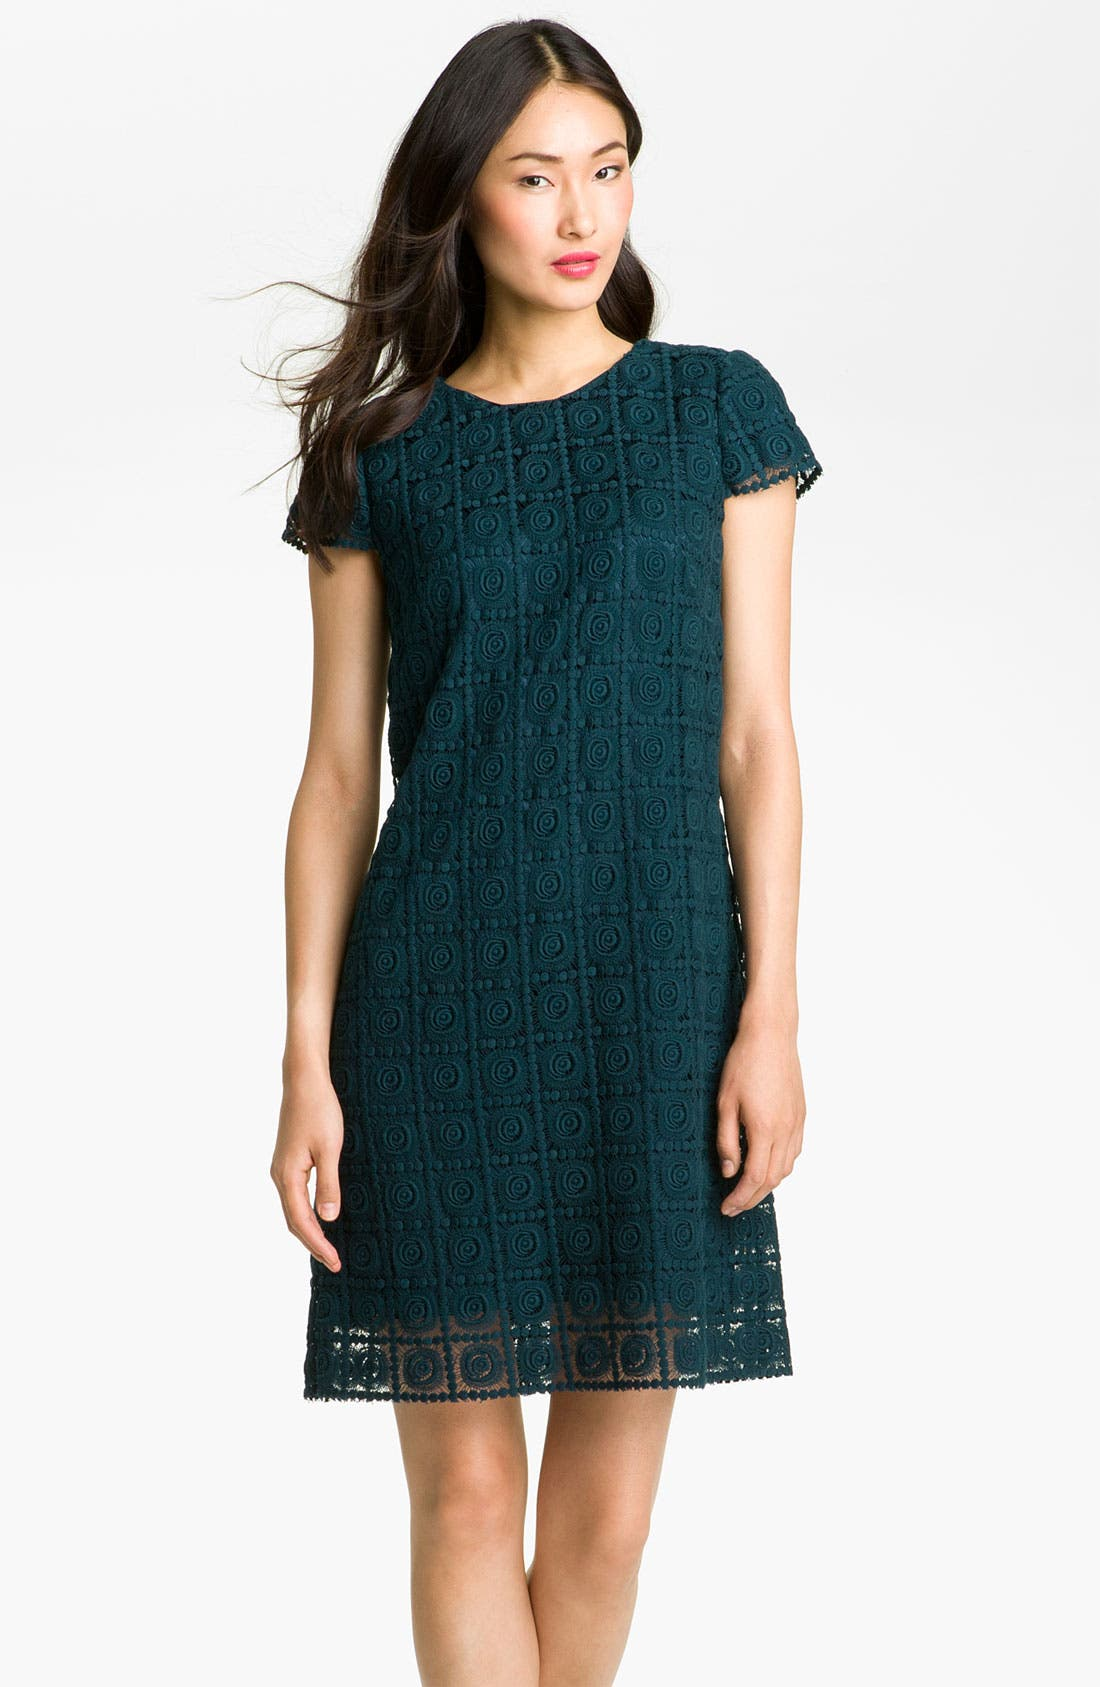 Alternate Image 1 Selected - Suzi Chin for Maggy Boutique Crochet Shift Dress (Petite)